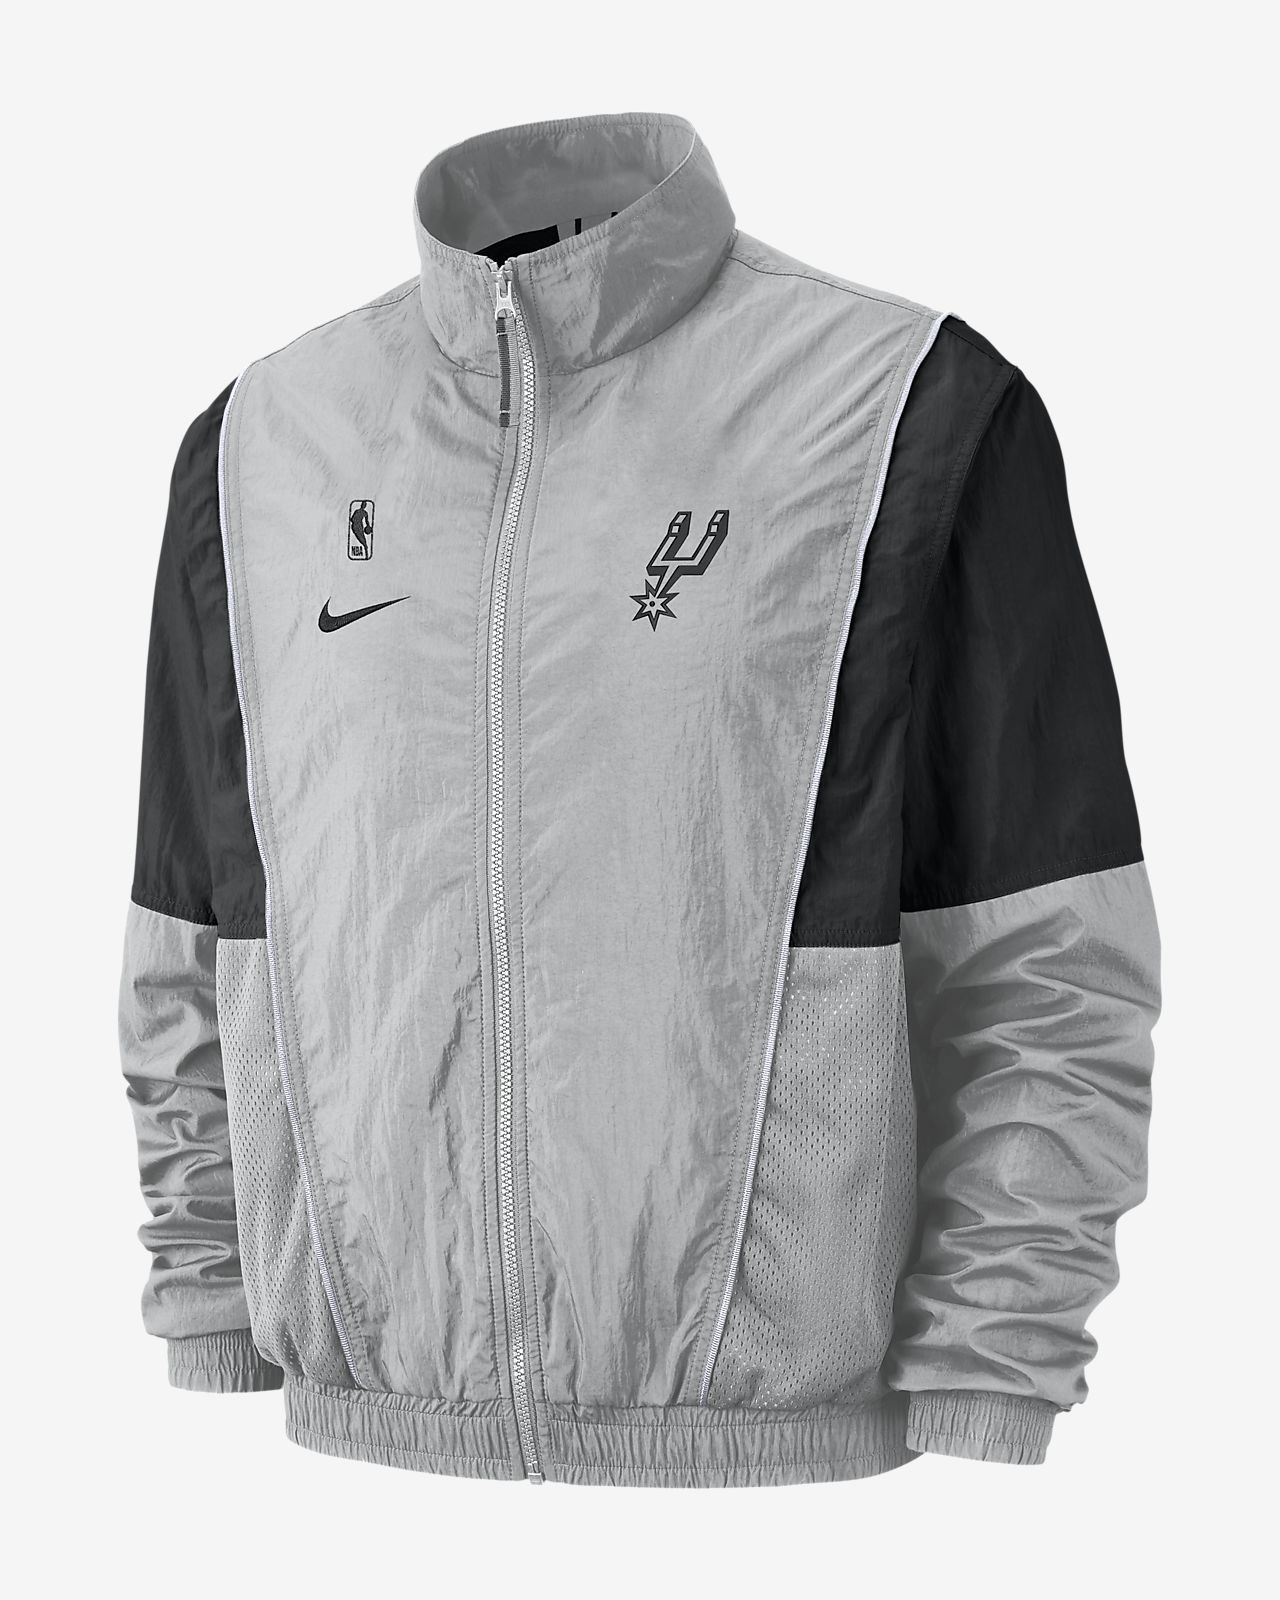 San Antonio Spurs Nike Men's NBA Tracksuit Jacket